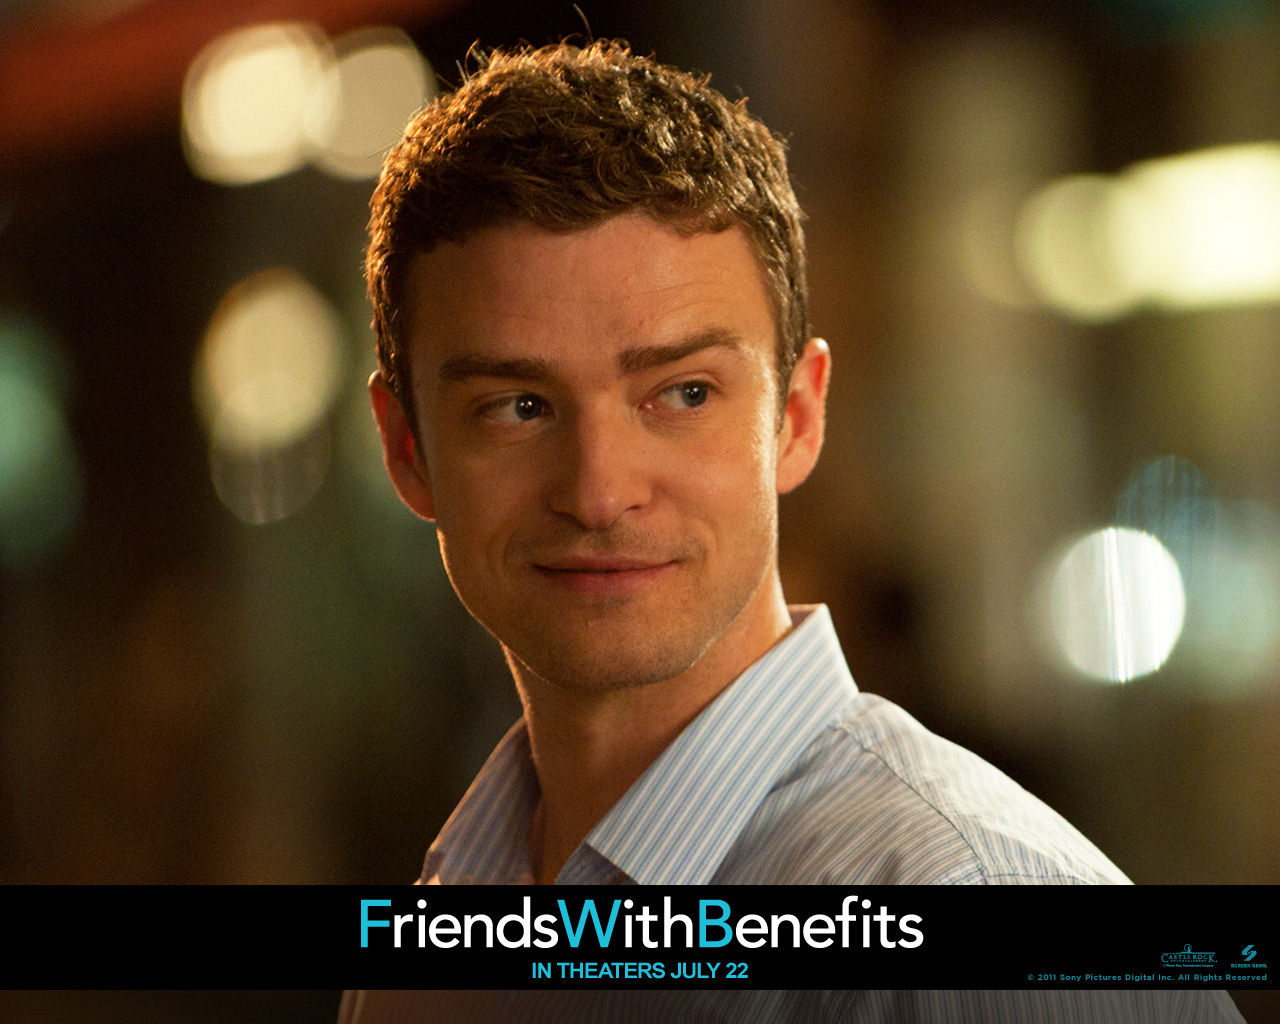 http://2.bp.blogspot.com/-5KUF7DvV3Ss/TjQ-7IKfiGI/AAAAAAAAB8M/Njm8tKBH4M8/s1600/Justin_Timberlake_in_Friends_with_Benefits_Wallpaper_2_1024.jpg